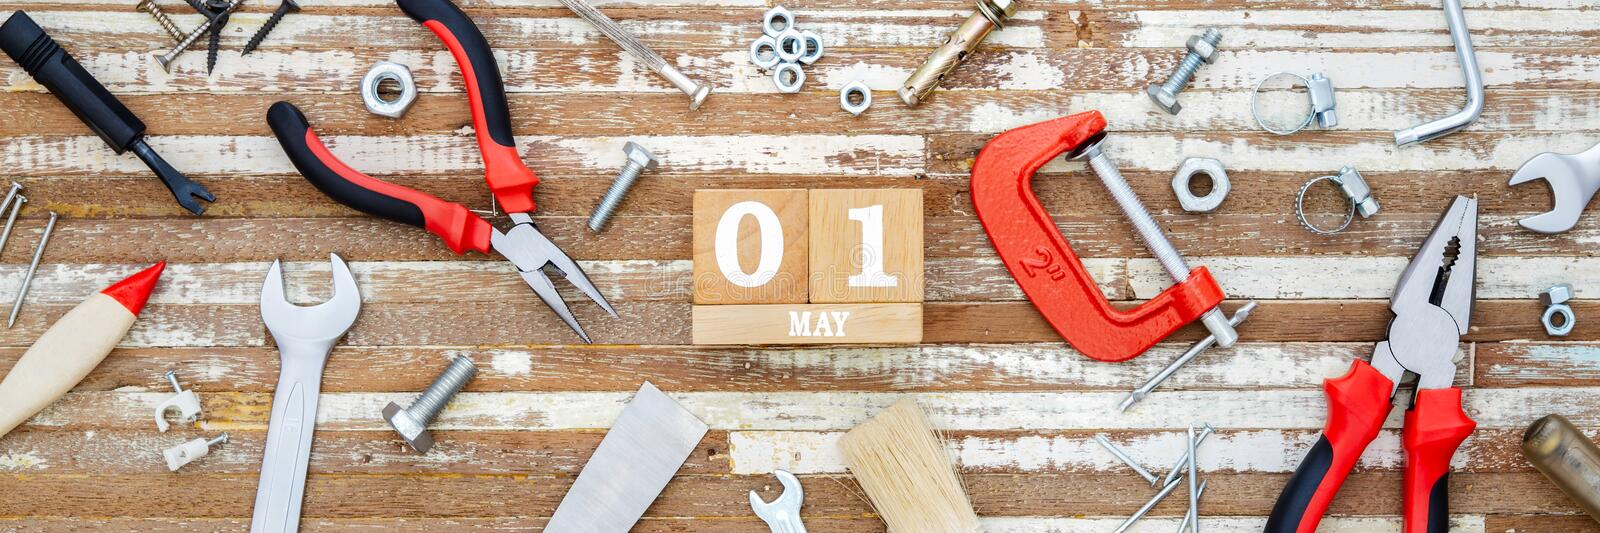 1st May. Happy International Worker& x27;s day or Labour Day Web banner background concpet.  wooden block calendar 1 May and handy. Tools on grunge wooden table stock image